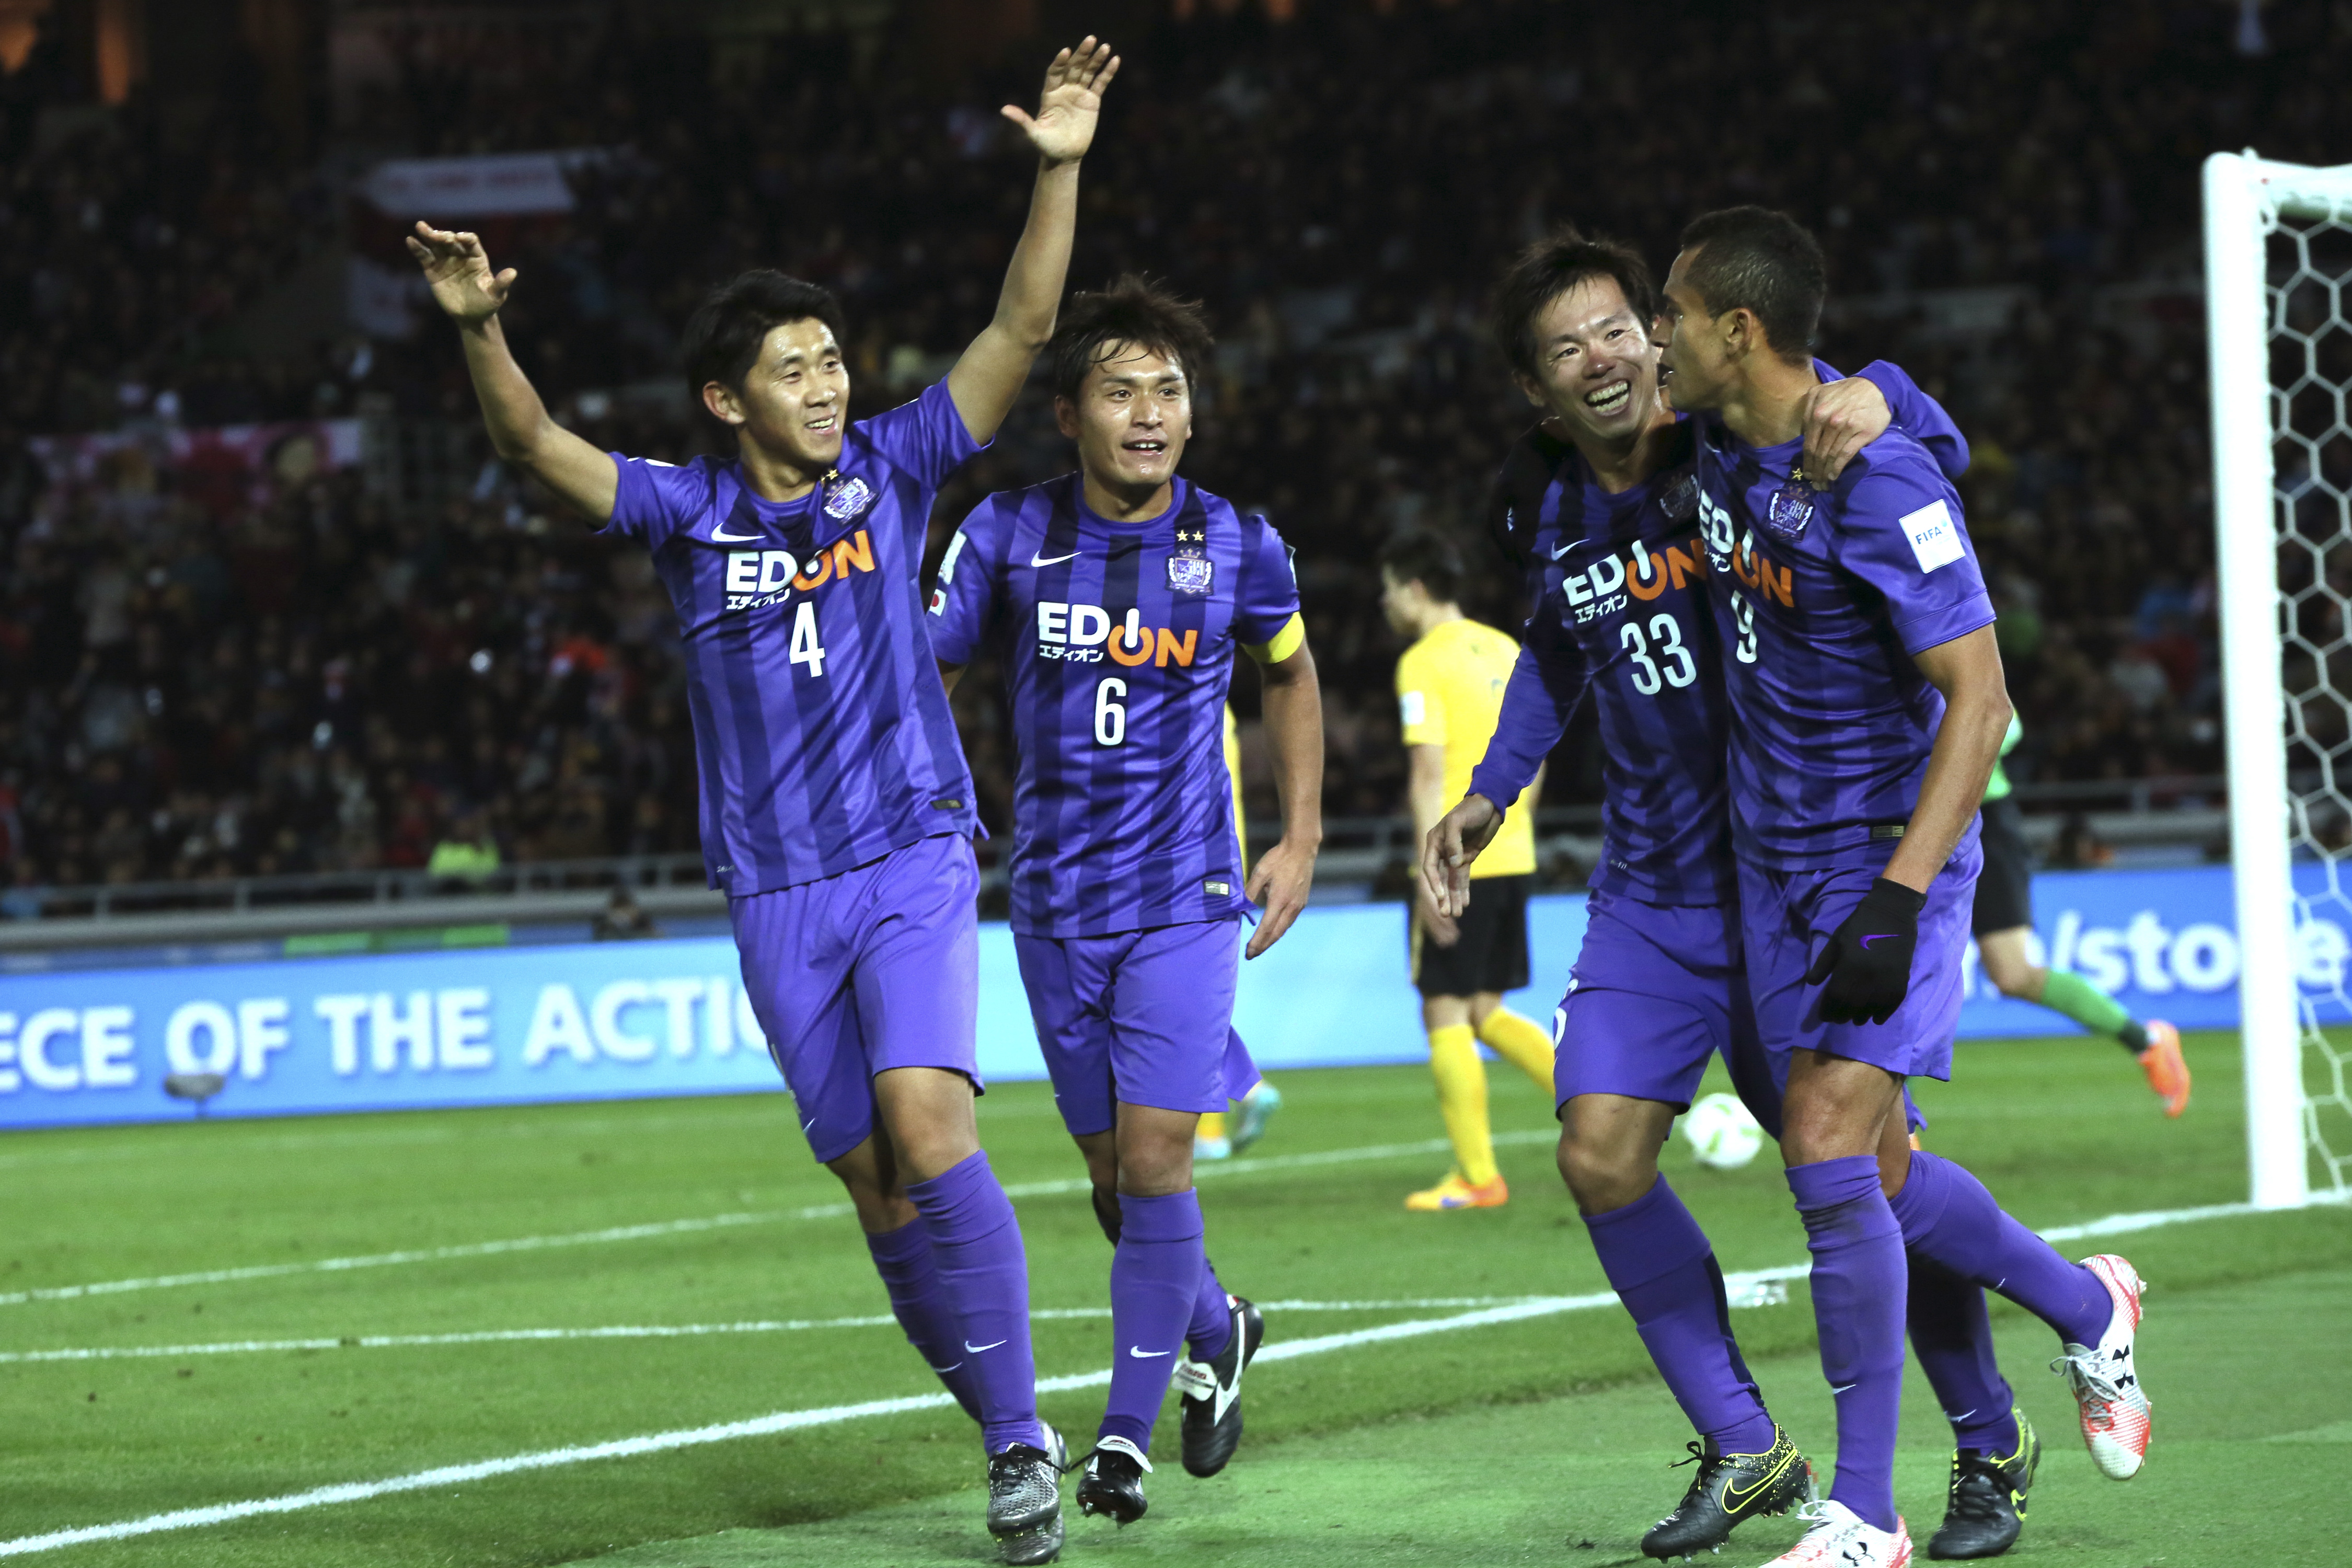 Sanfrecce Hiroshimau0092s Douglas of Brazil, right, is cheered by team mate after scoring against Guangzhou Evergrande during their match for the third place at the FIFA Club World Cup soccer tournament in Yokohama, near Tokyo, Japan, Sunday, Dec. 20, 2015. AP